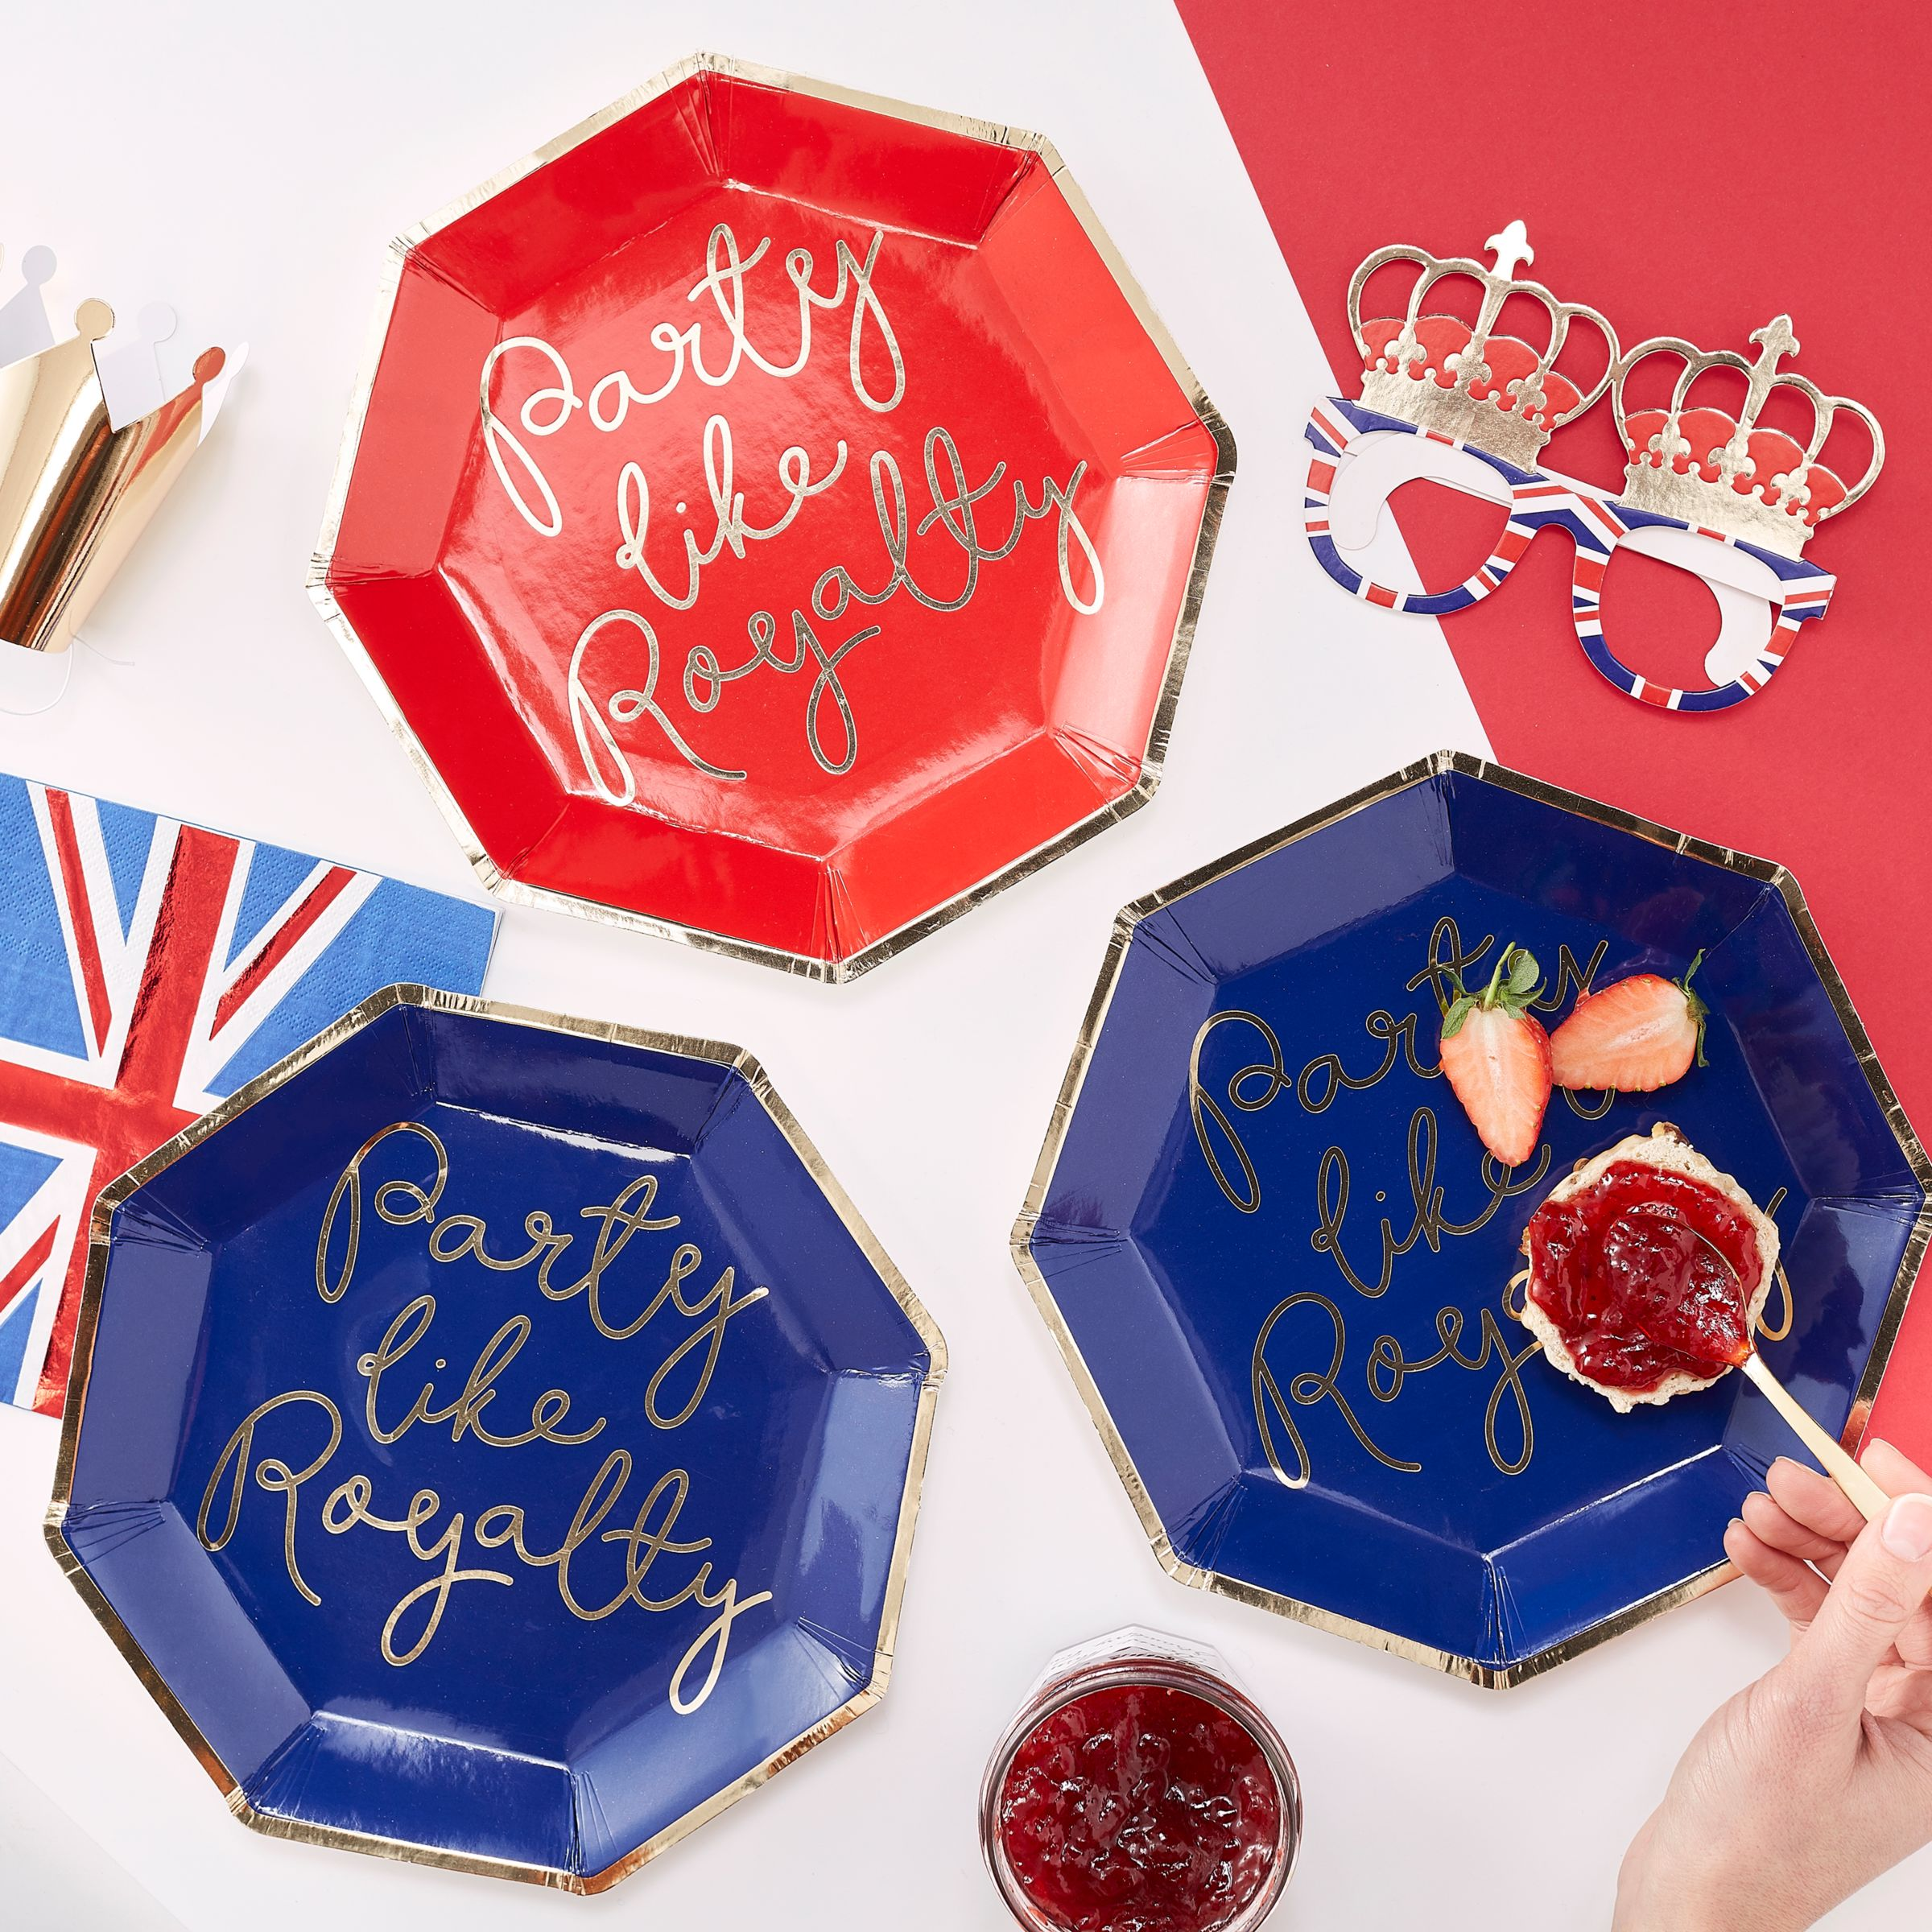 Royal Wedding Gifts and Partyware